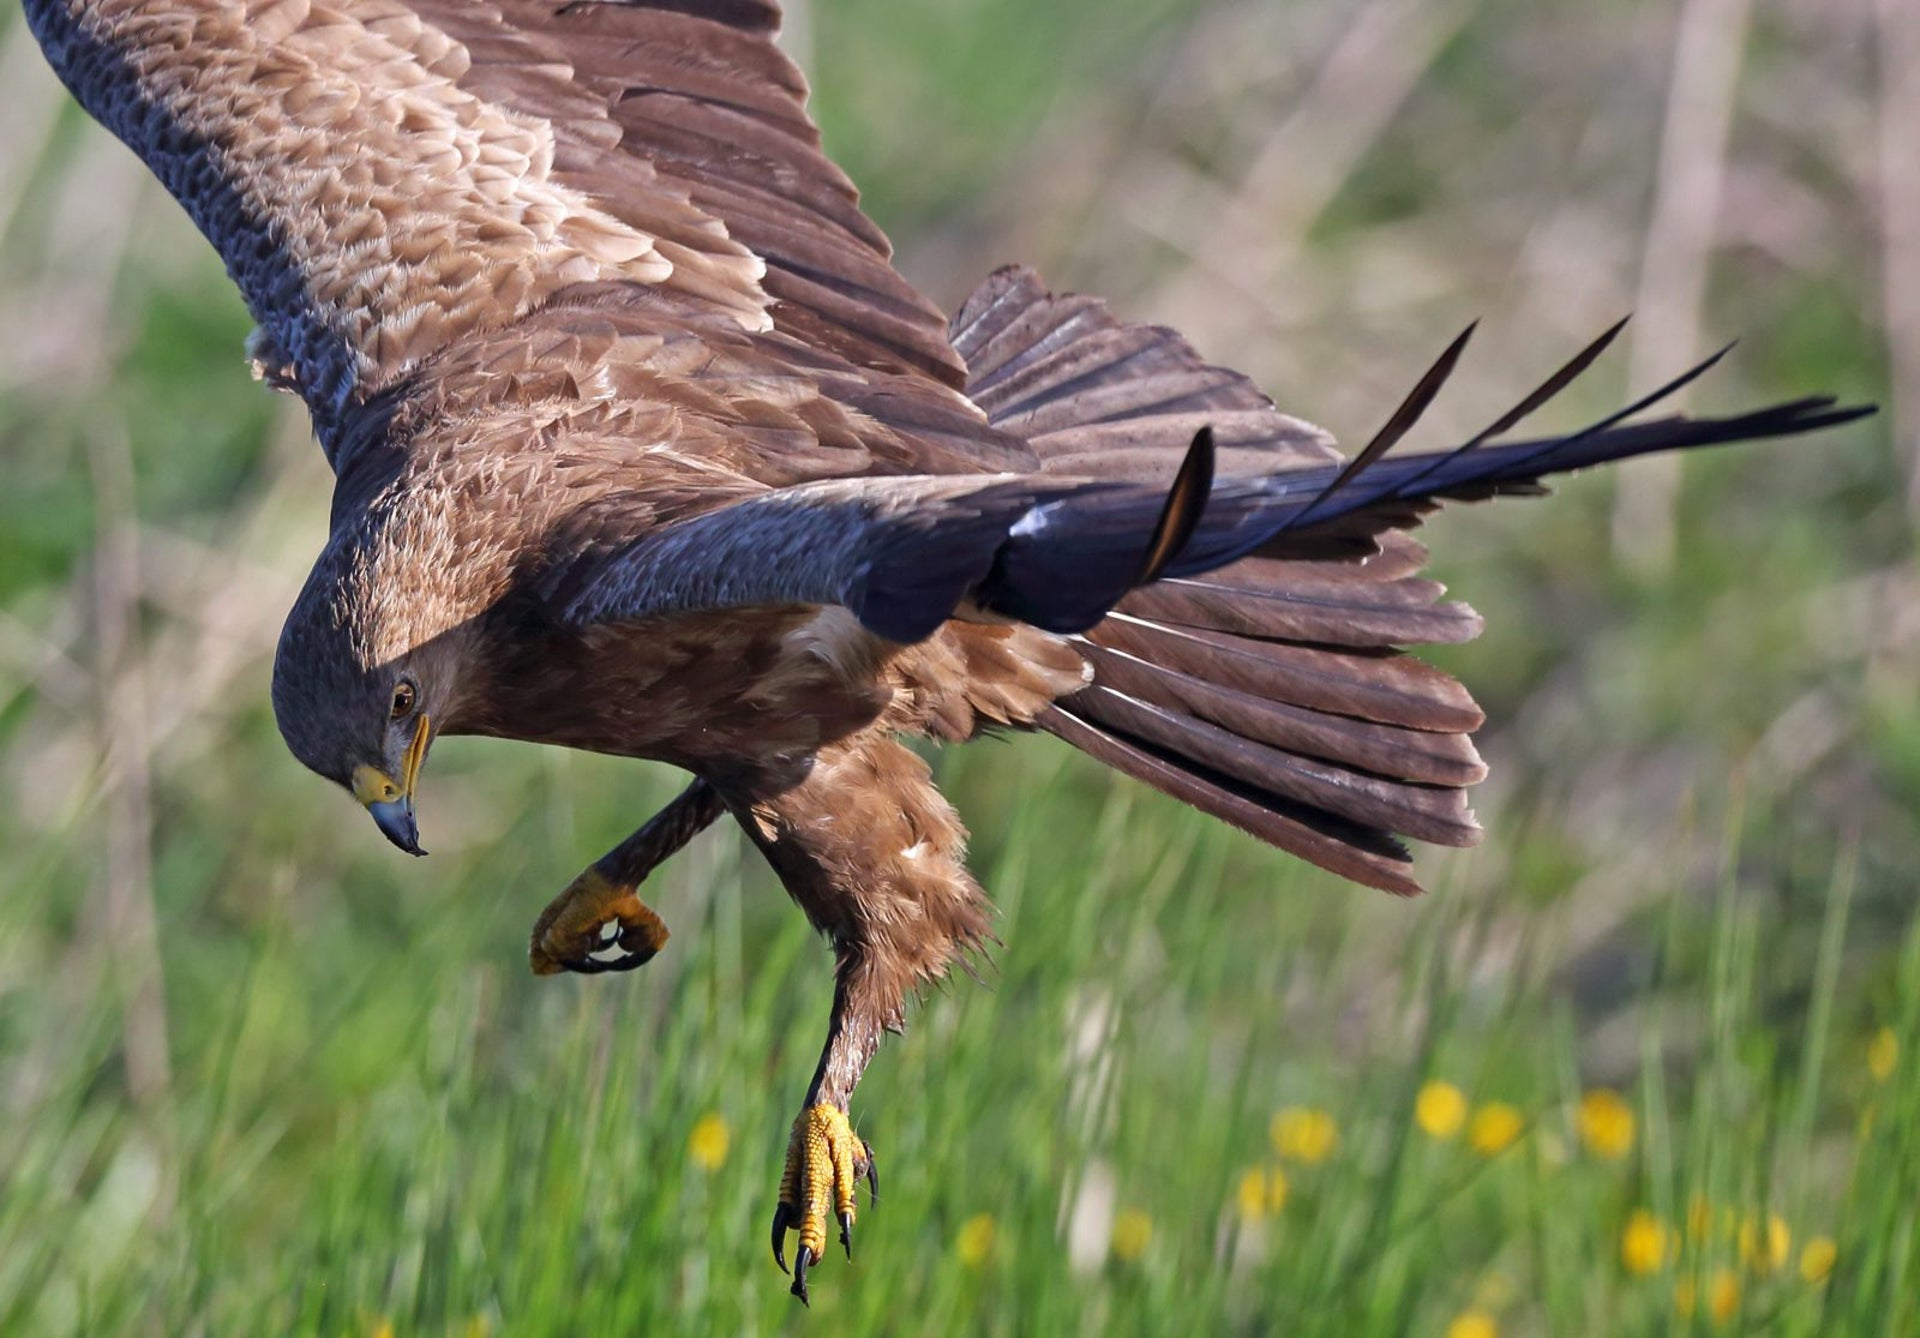 A lesser spotted eagle